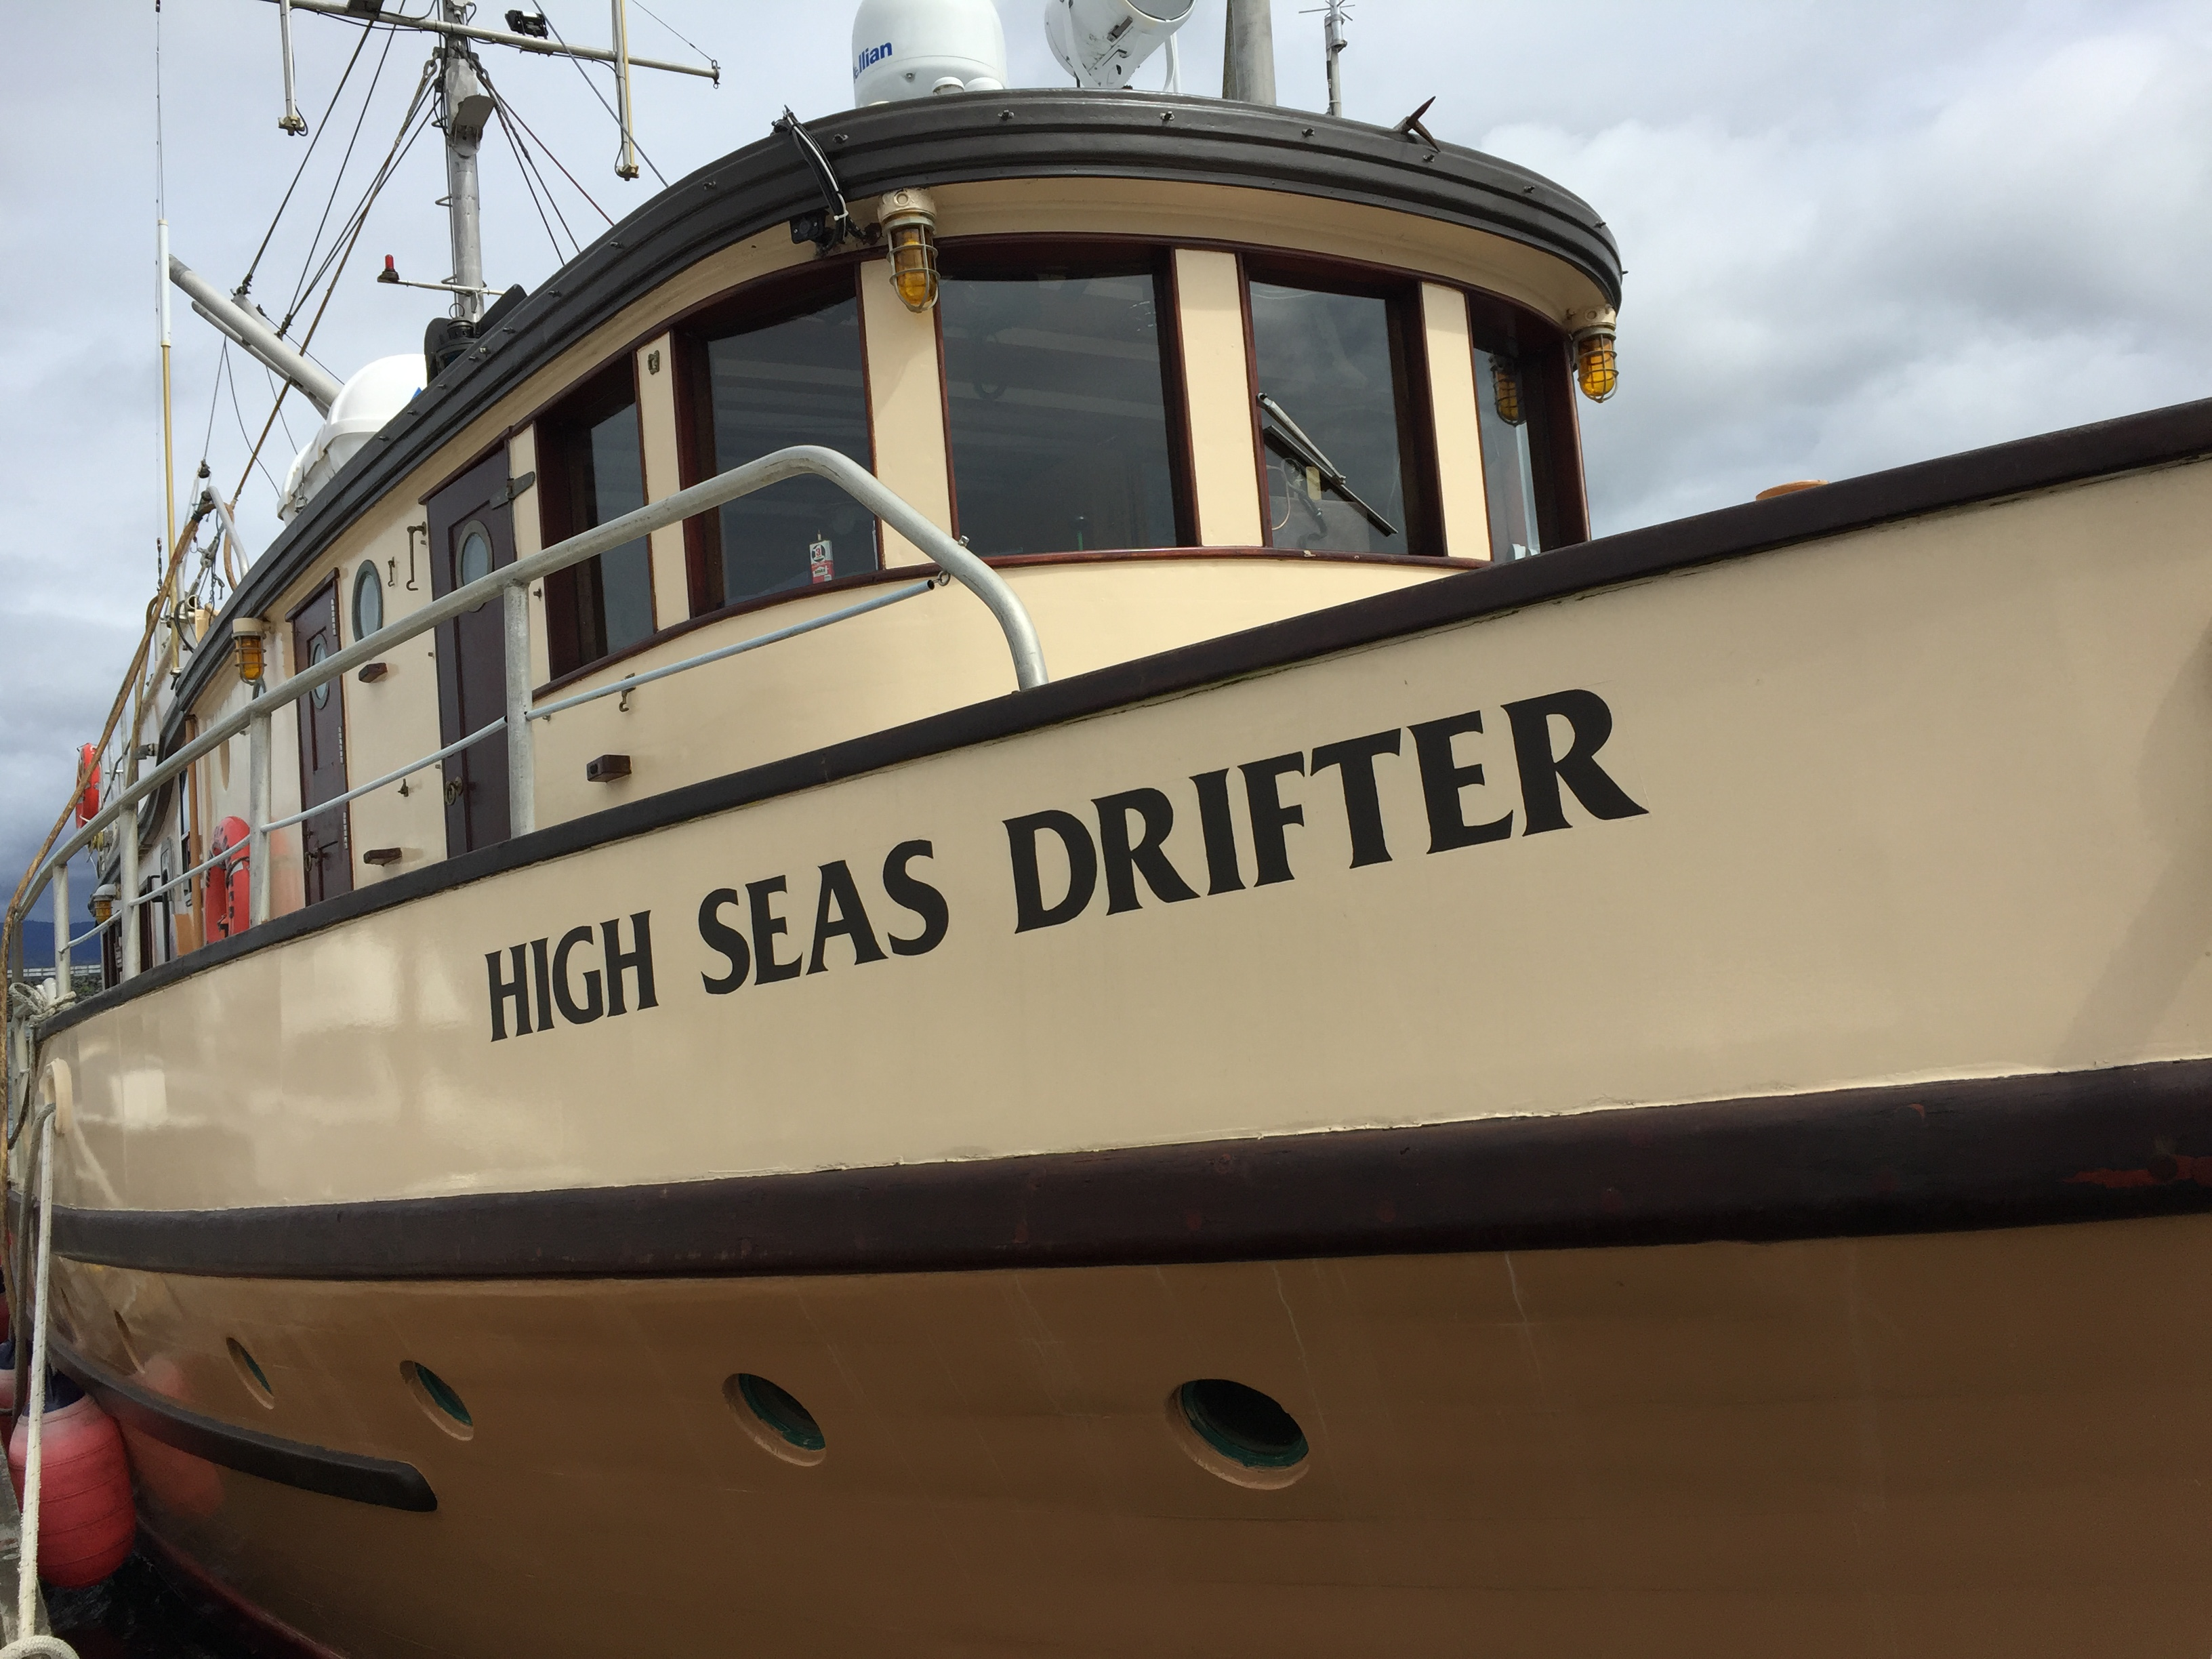 High Seas Drifter